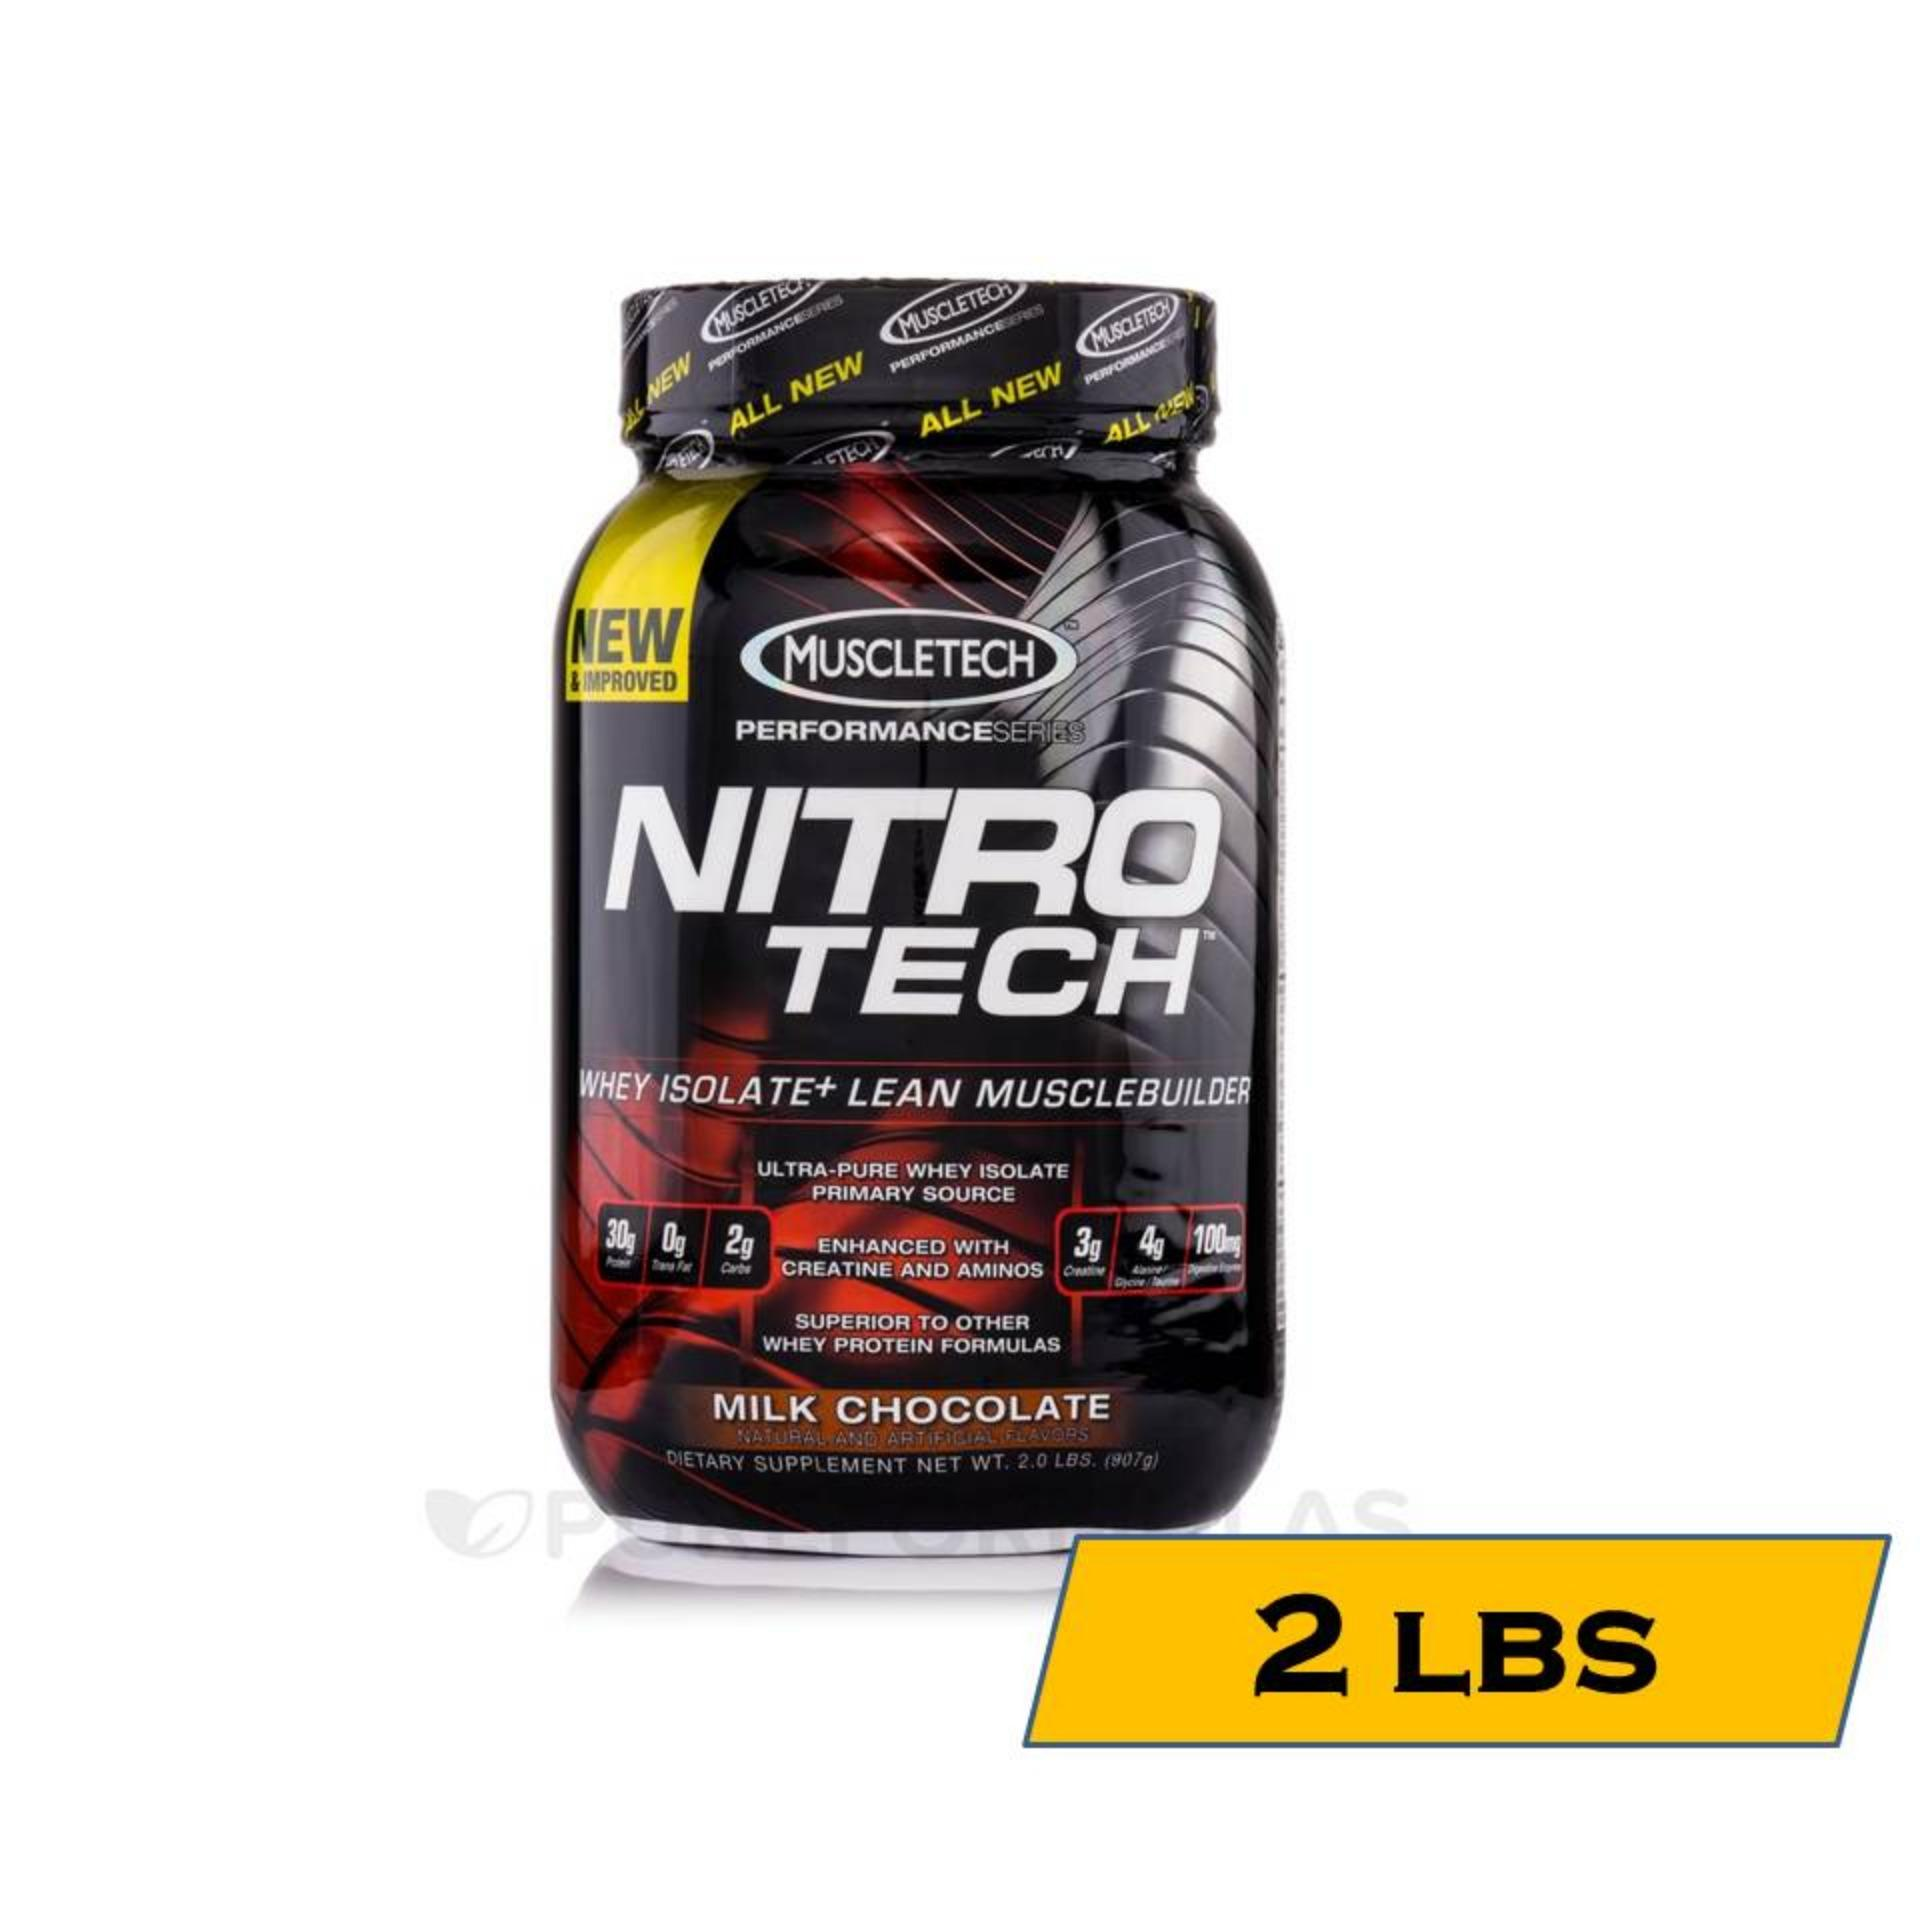 Philippines Muscletech Nitro Tech Performance Series Muscle Nitrotech Whey Gold 6 Lb Building Protein Shake 2lbs Milk Chocolate